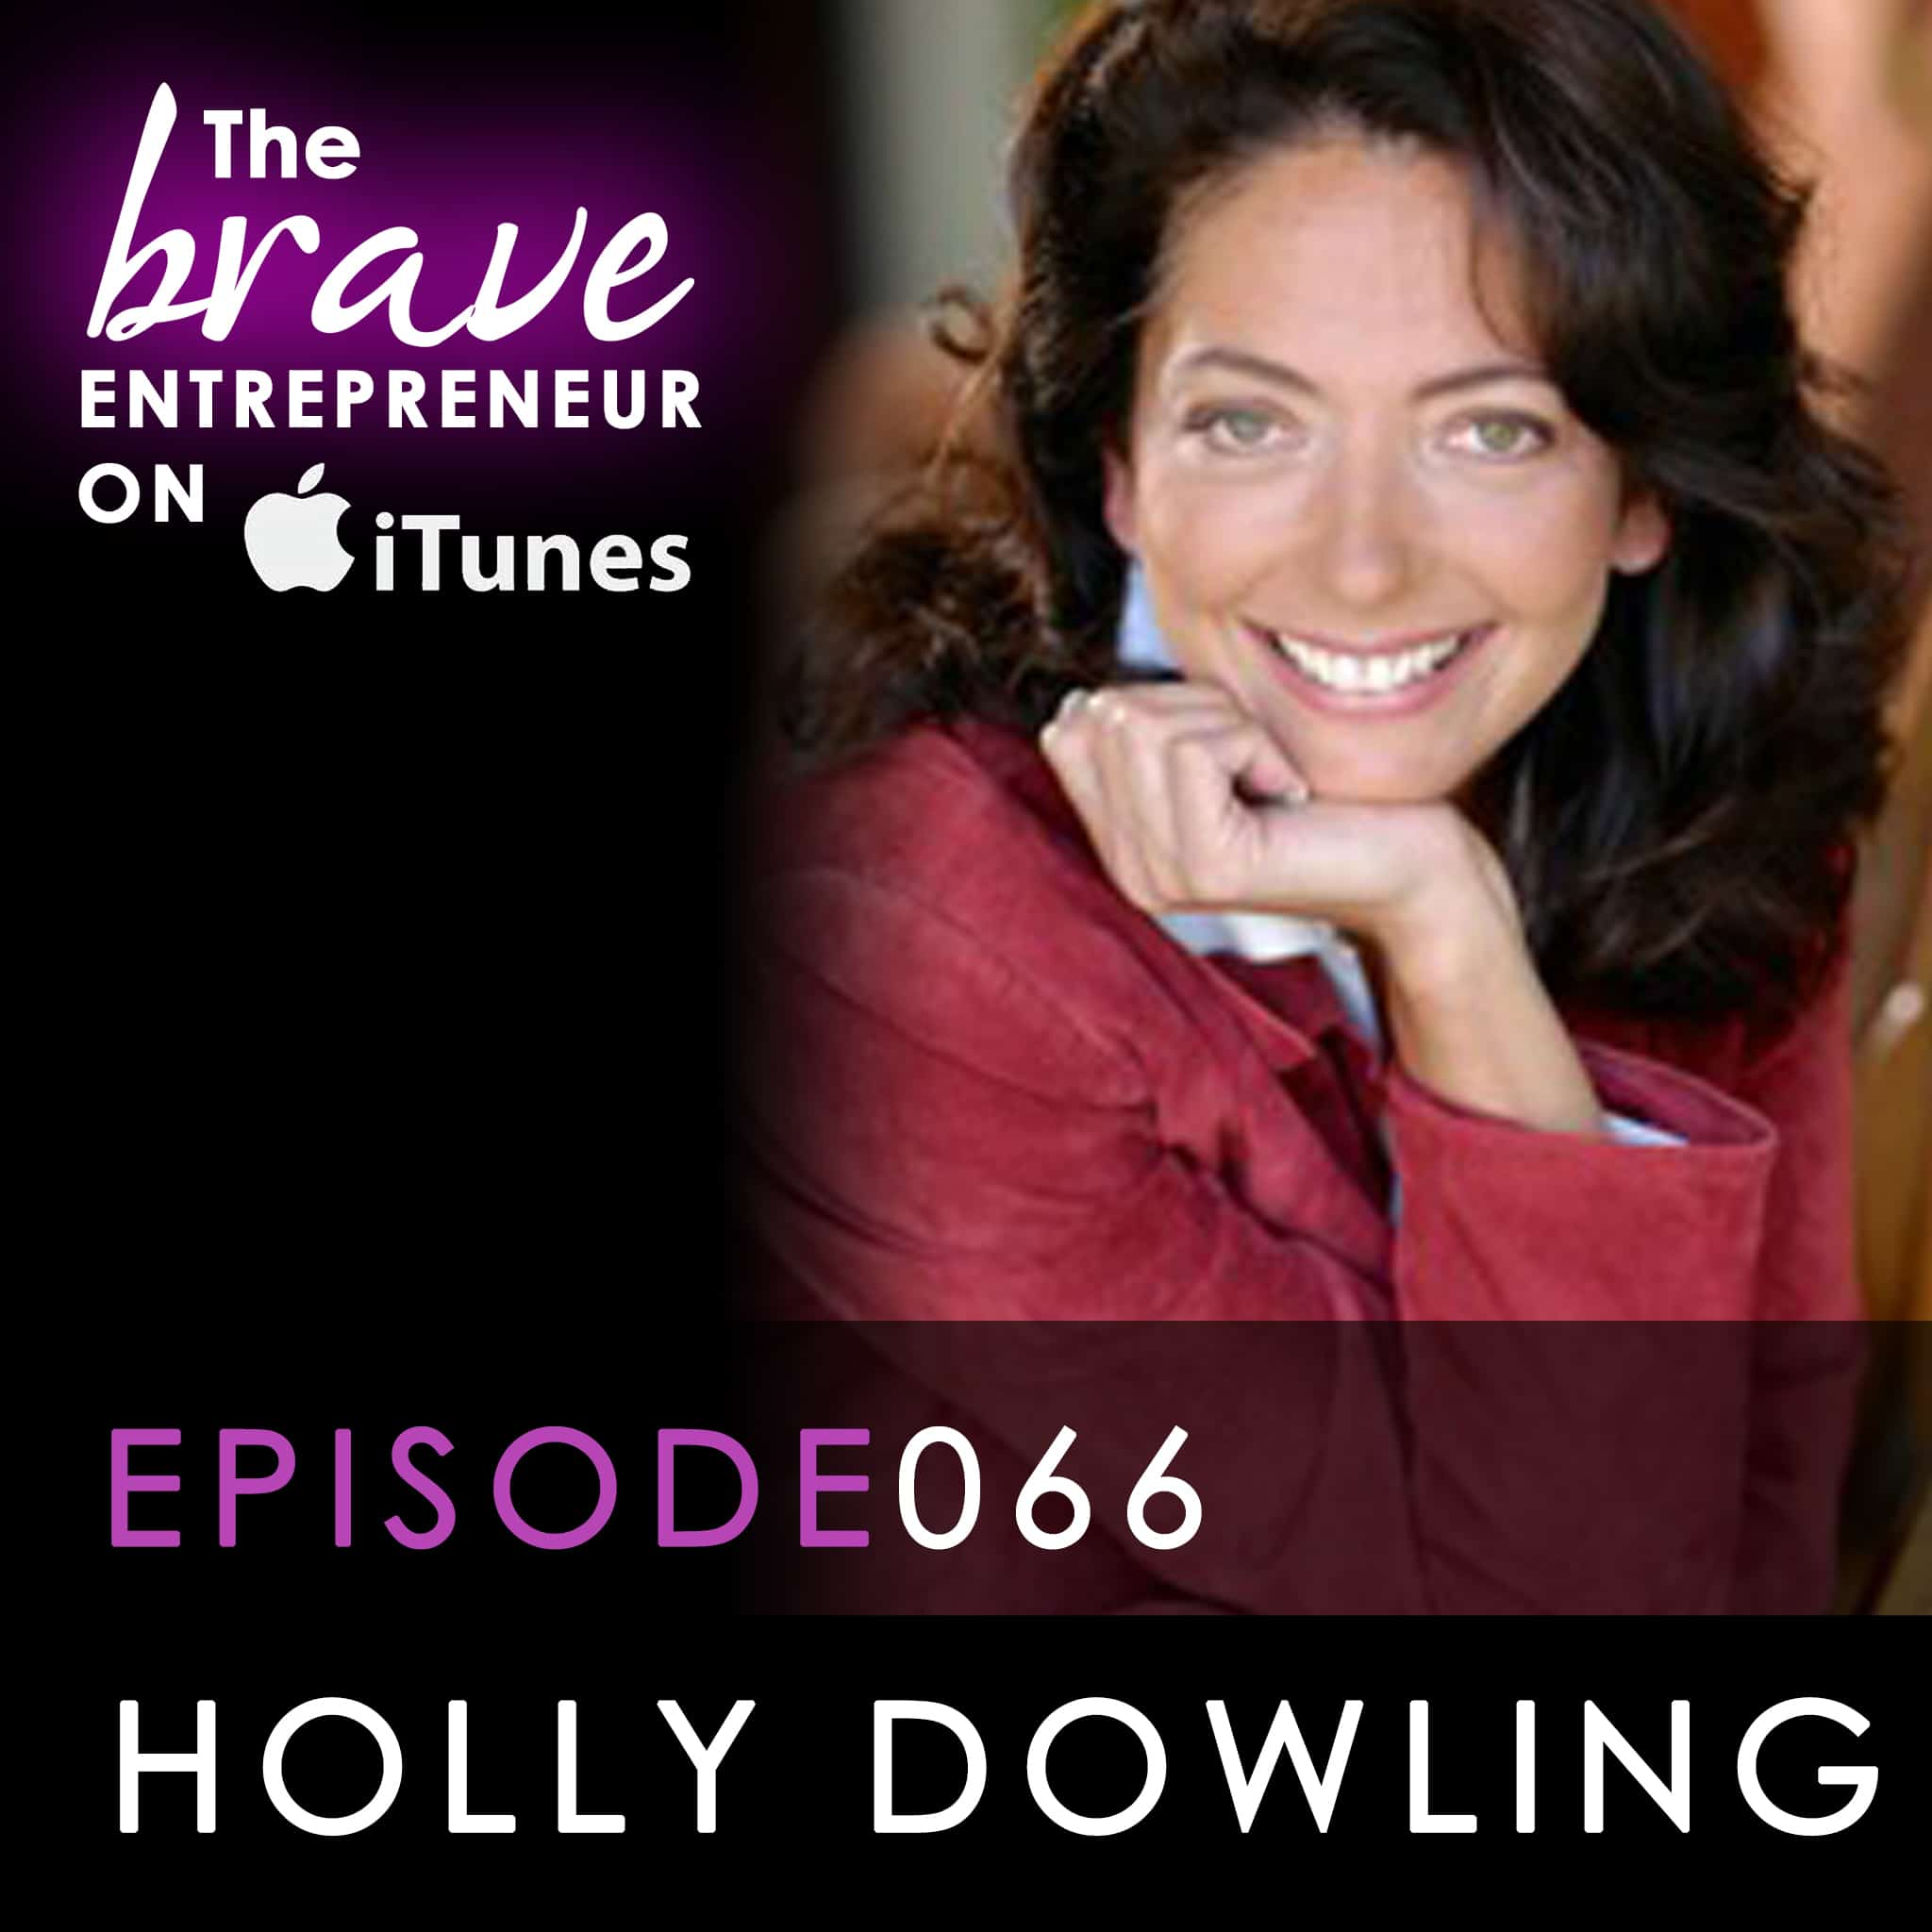 Holly Dowling Guest Appearance on The Brave Entrepreneur with Jena Rodriguez